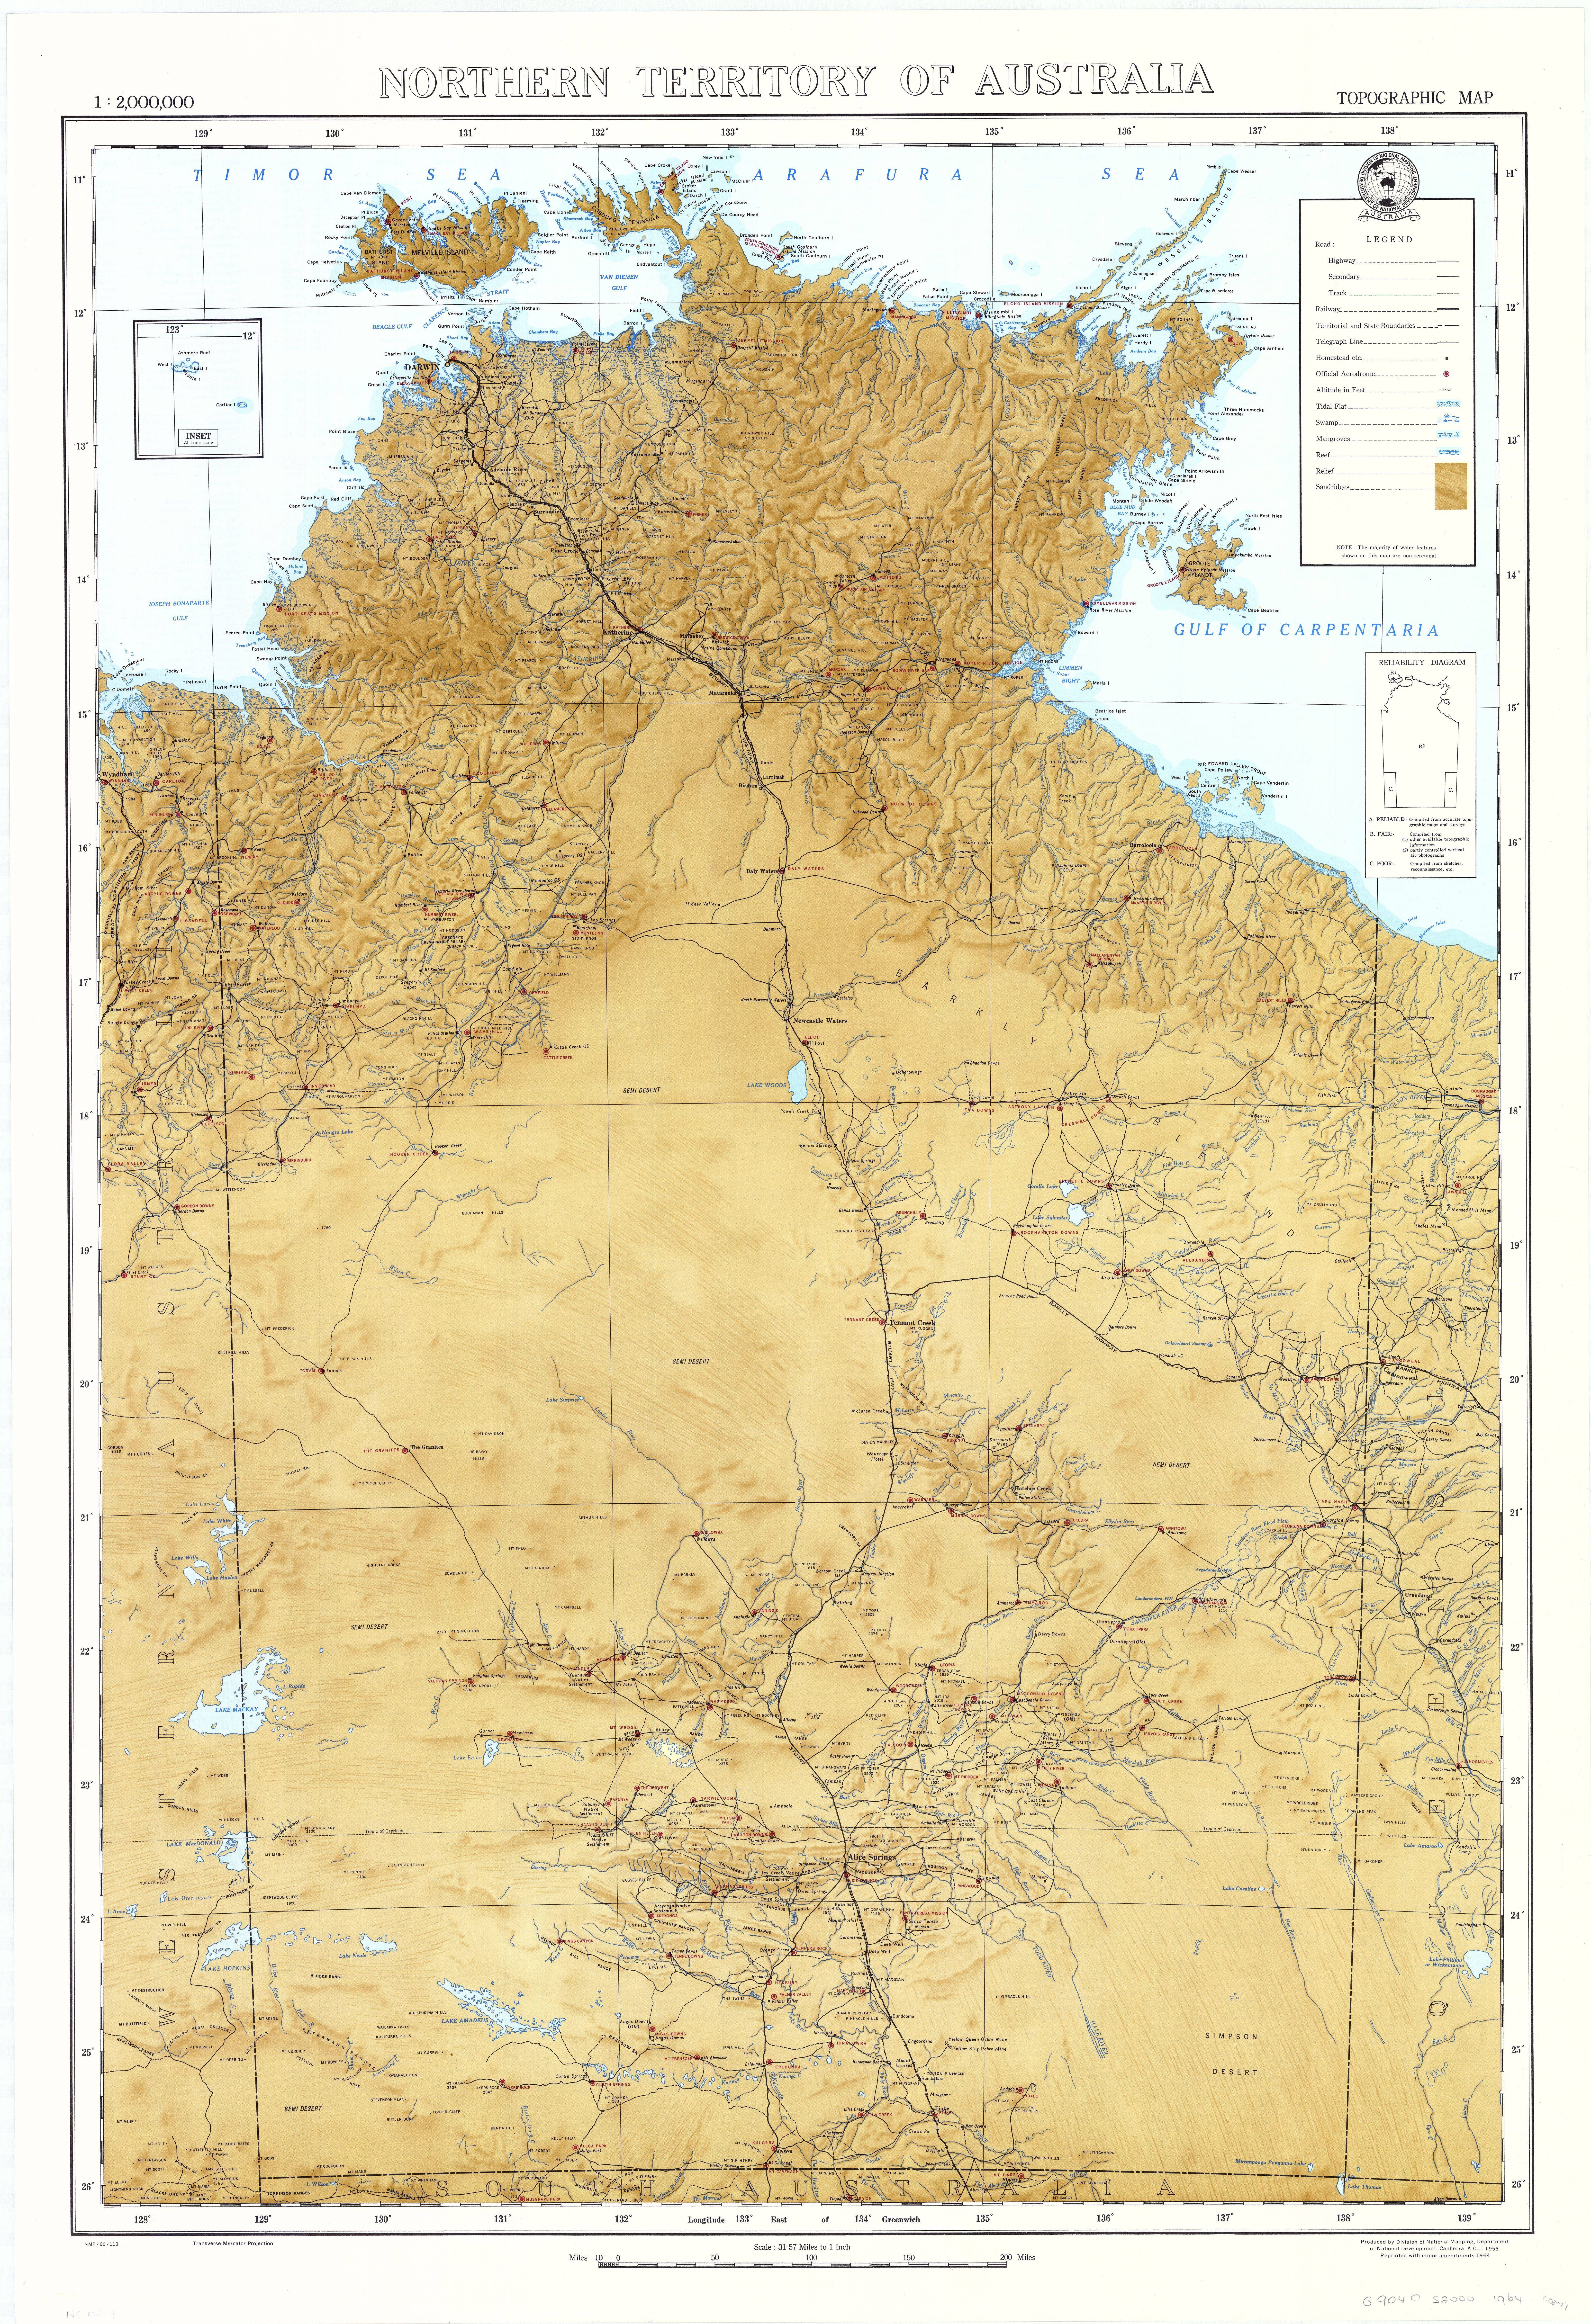 Northern Territory of Australia topographic map (1964) | Maps of ...